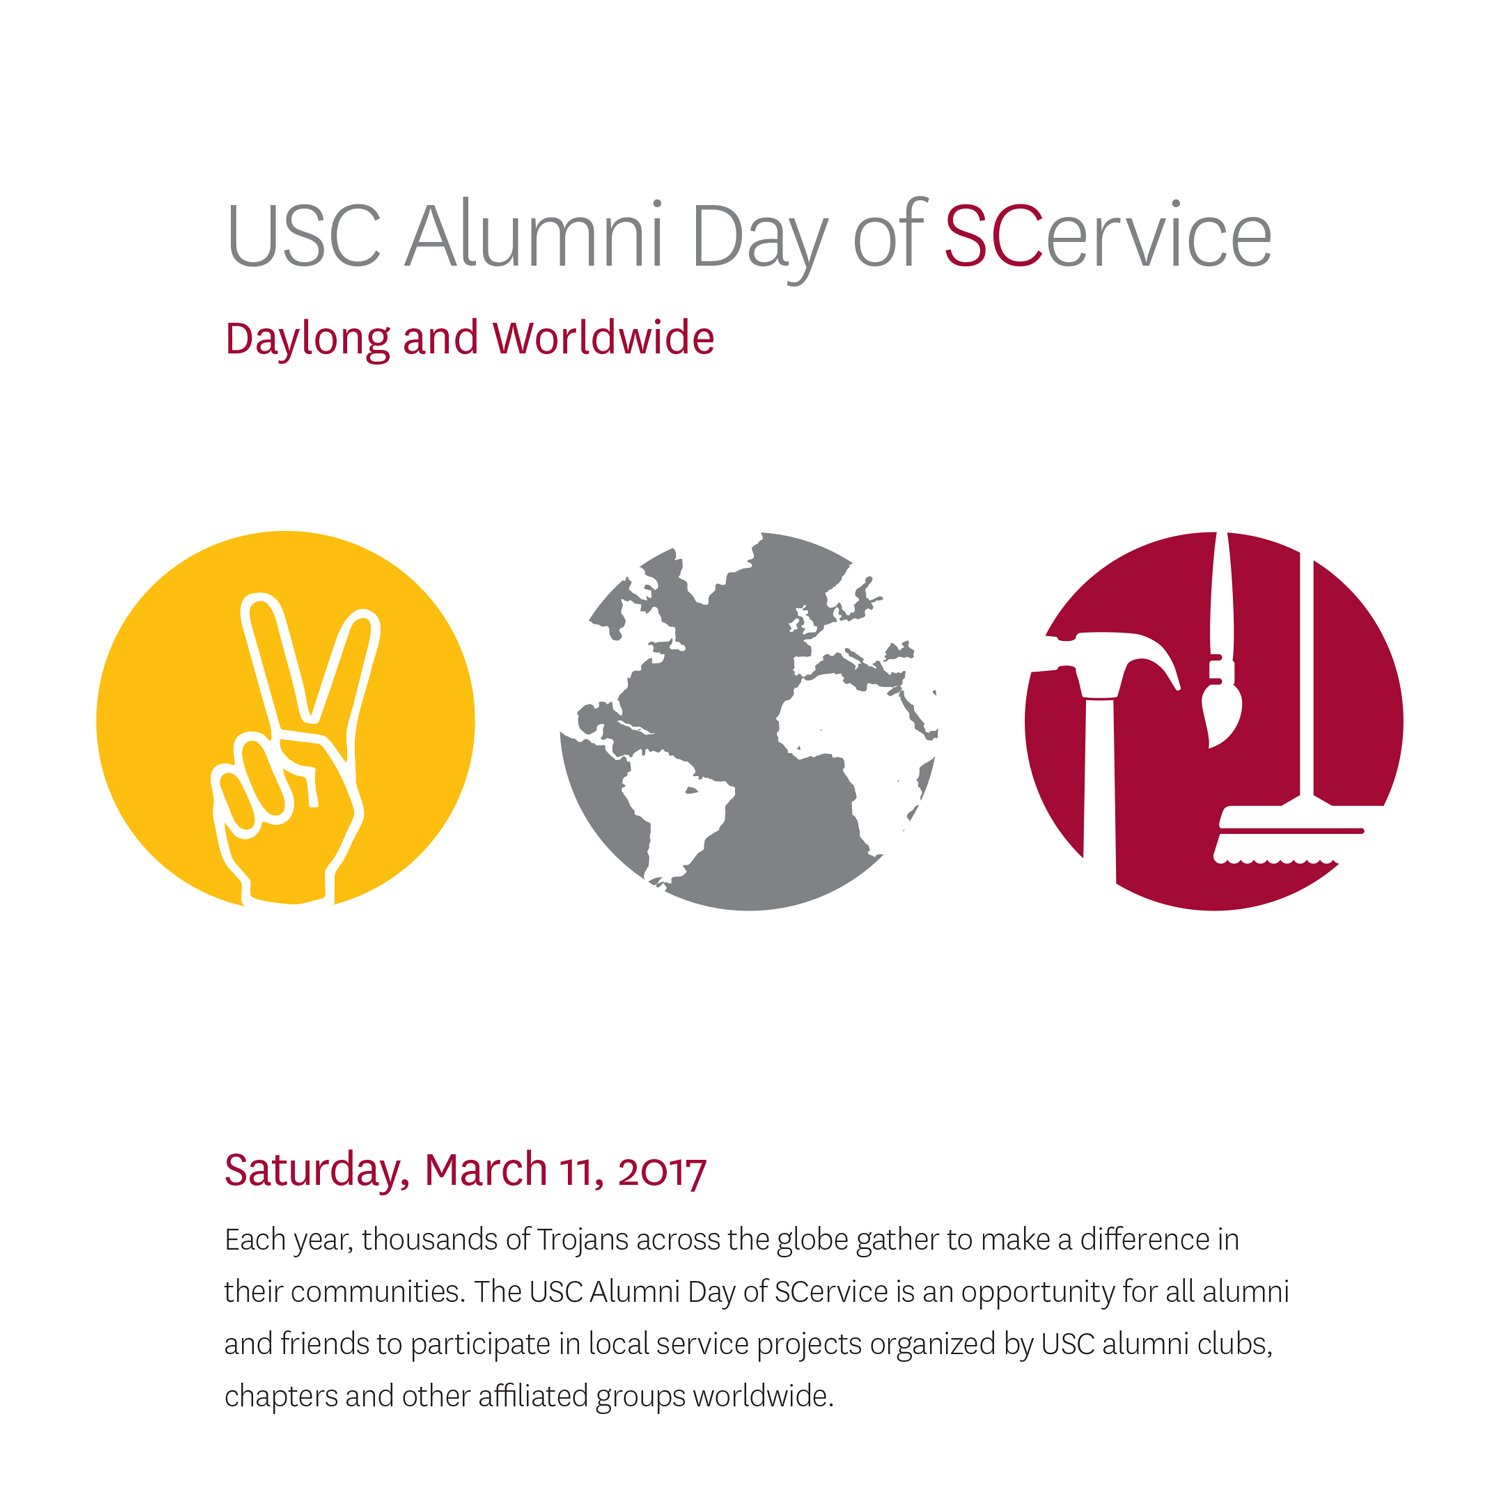 It's the #USCAlumni Day of SCervice! Remember to share photos & video from your projects today using #SCervice so we can follow your story! https://t.co/ROiIGgiu1f